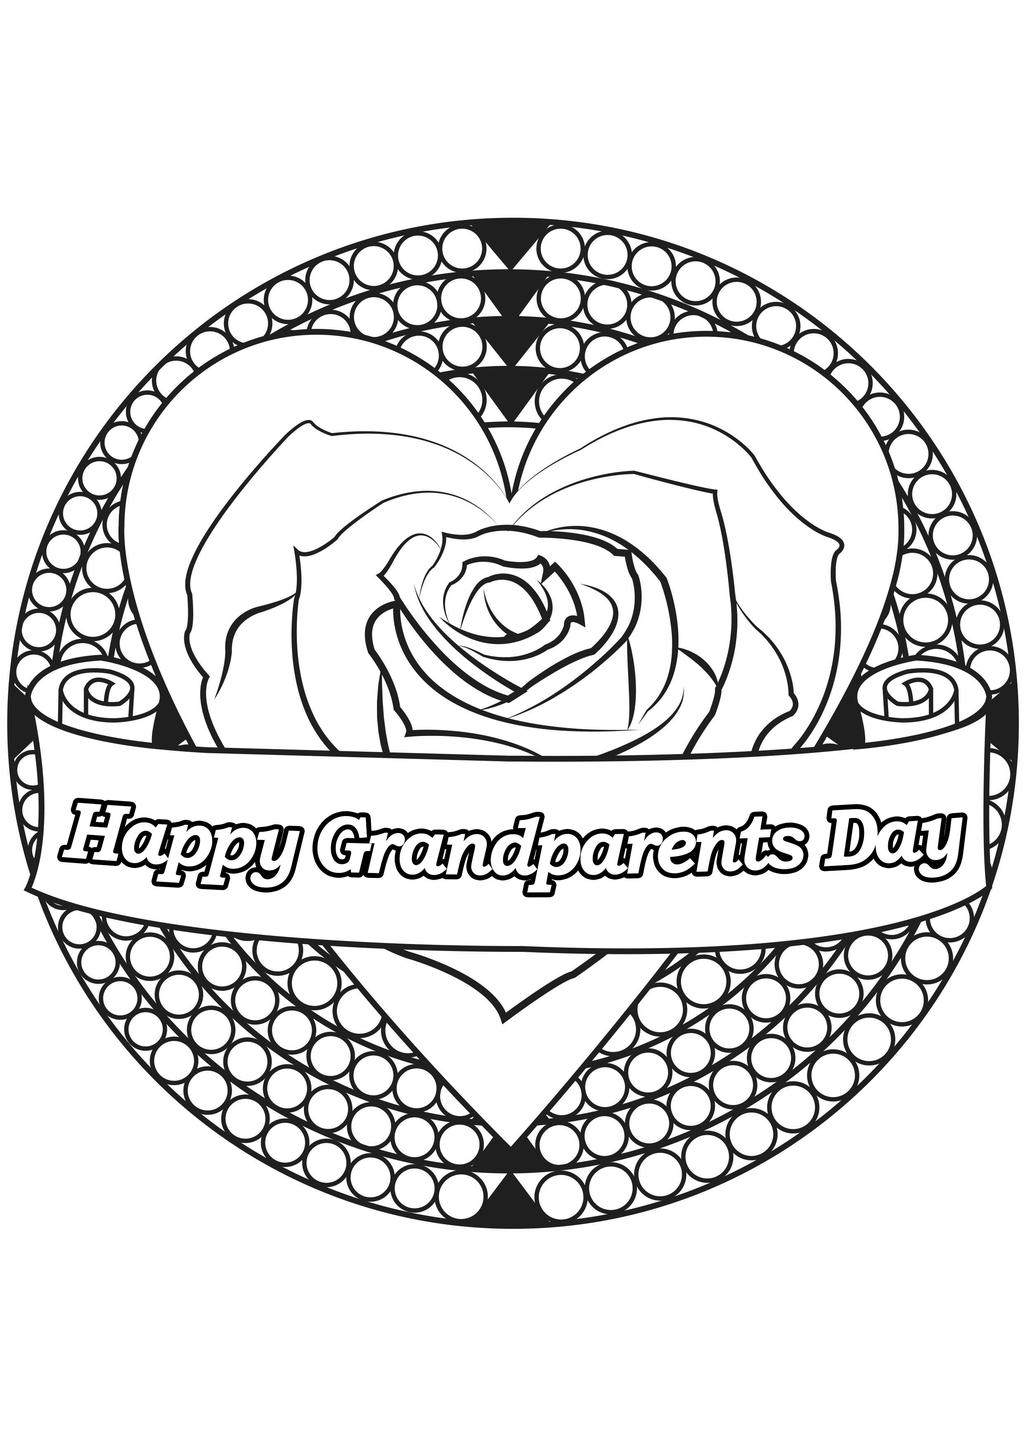 Free Grandparents Day Coloring Pages Clip Art printable